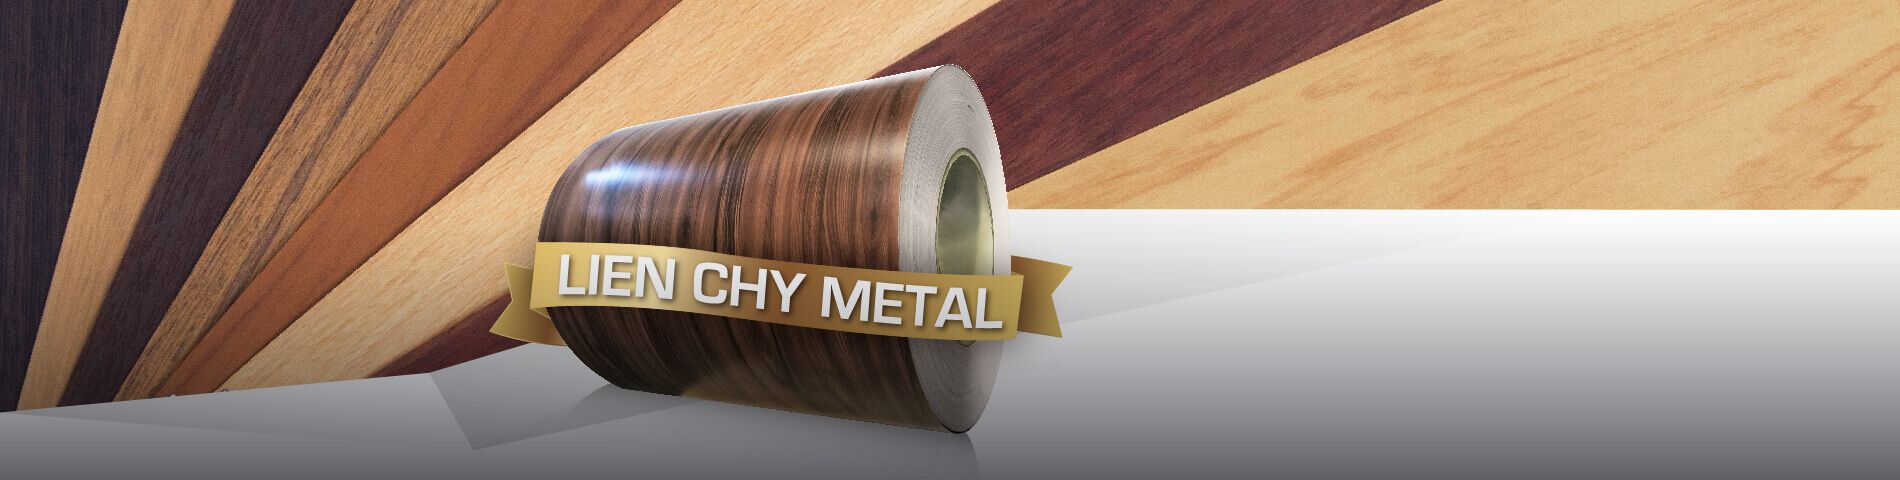 LIENCHY METAL LINKS COLOR AND METAL